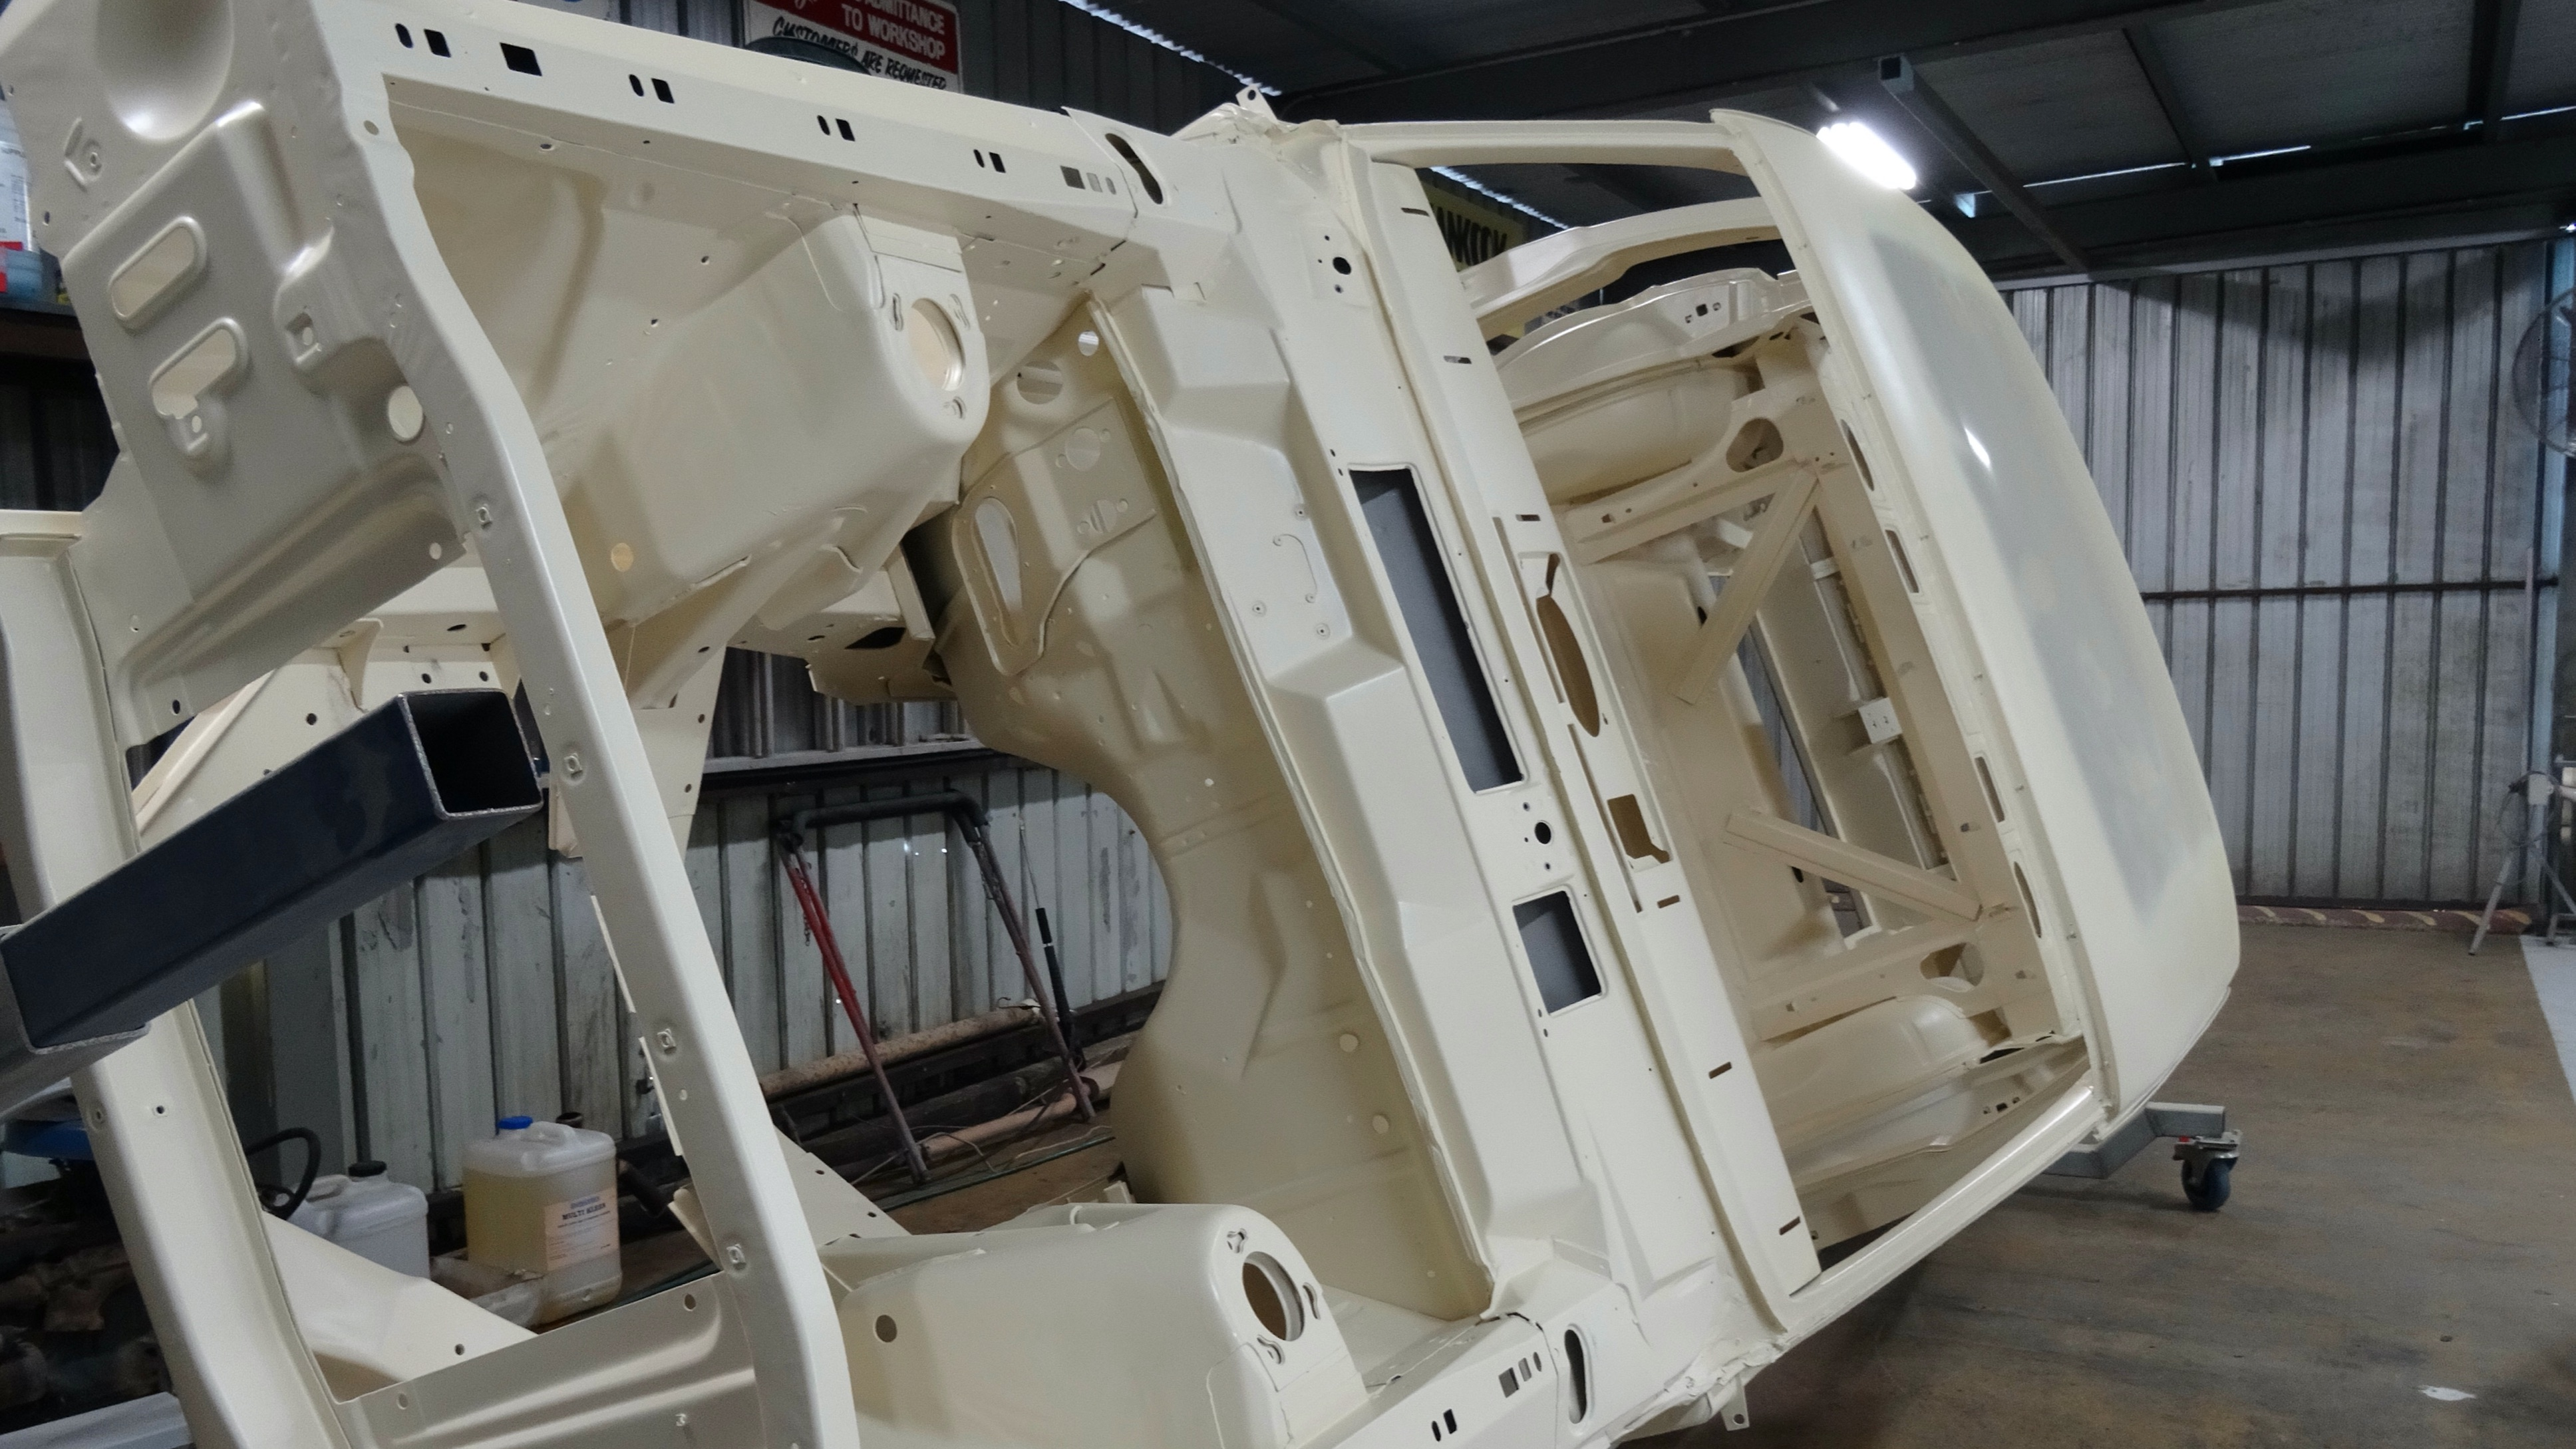 An XT Ford Falcon shell on a vehicle rotisserie awaiting paint and assembly at Blackstar Autocare